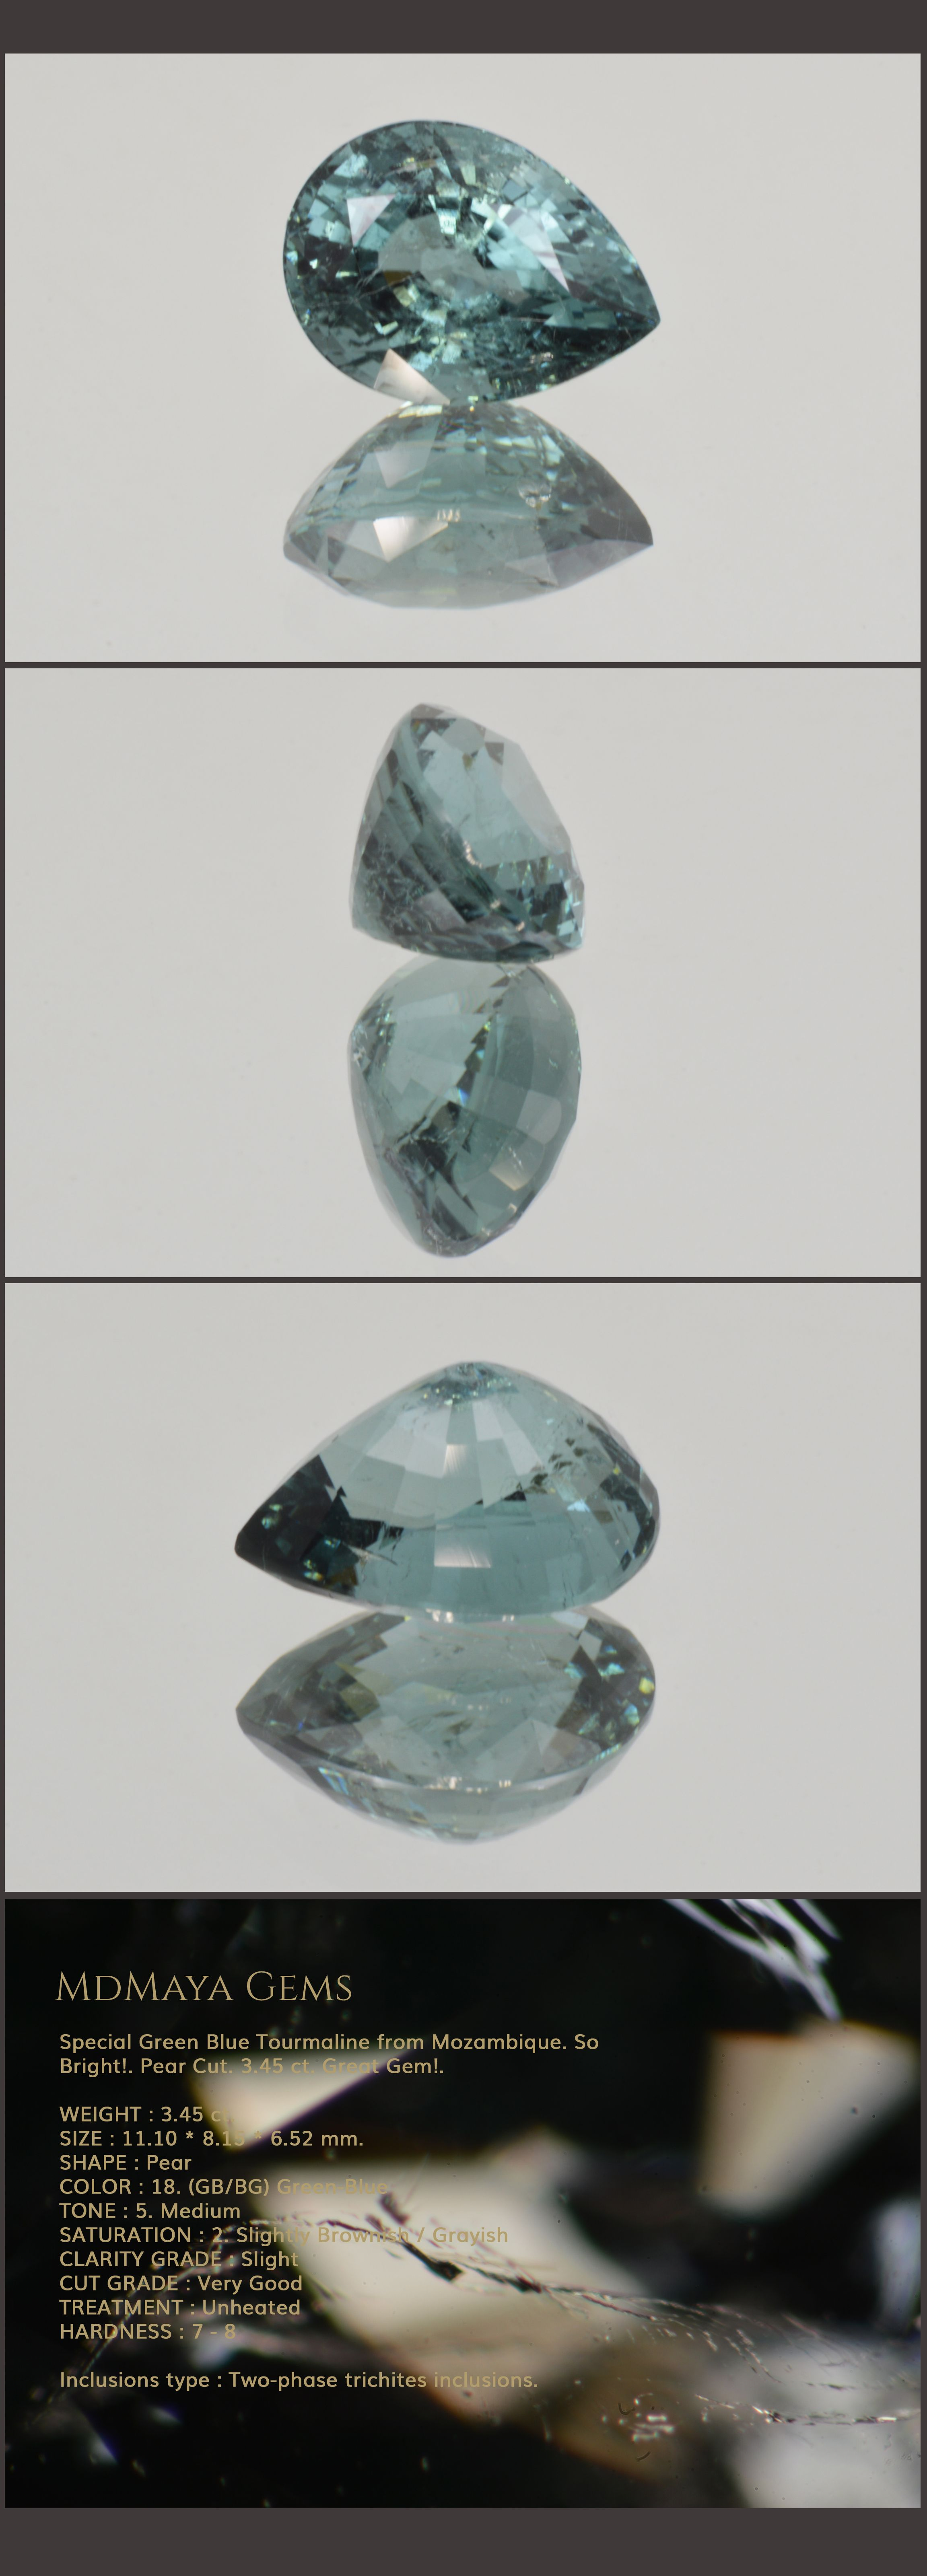 Special Green Blue Tourmaline from Mozambique. So Bright!. Pear Cut. 3.45 ct. Great Gem!.  Loose Blue Green Gemstones for sale MdMaya Gems